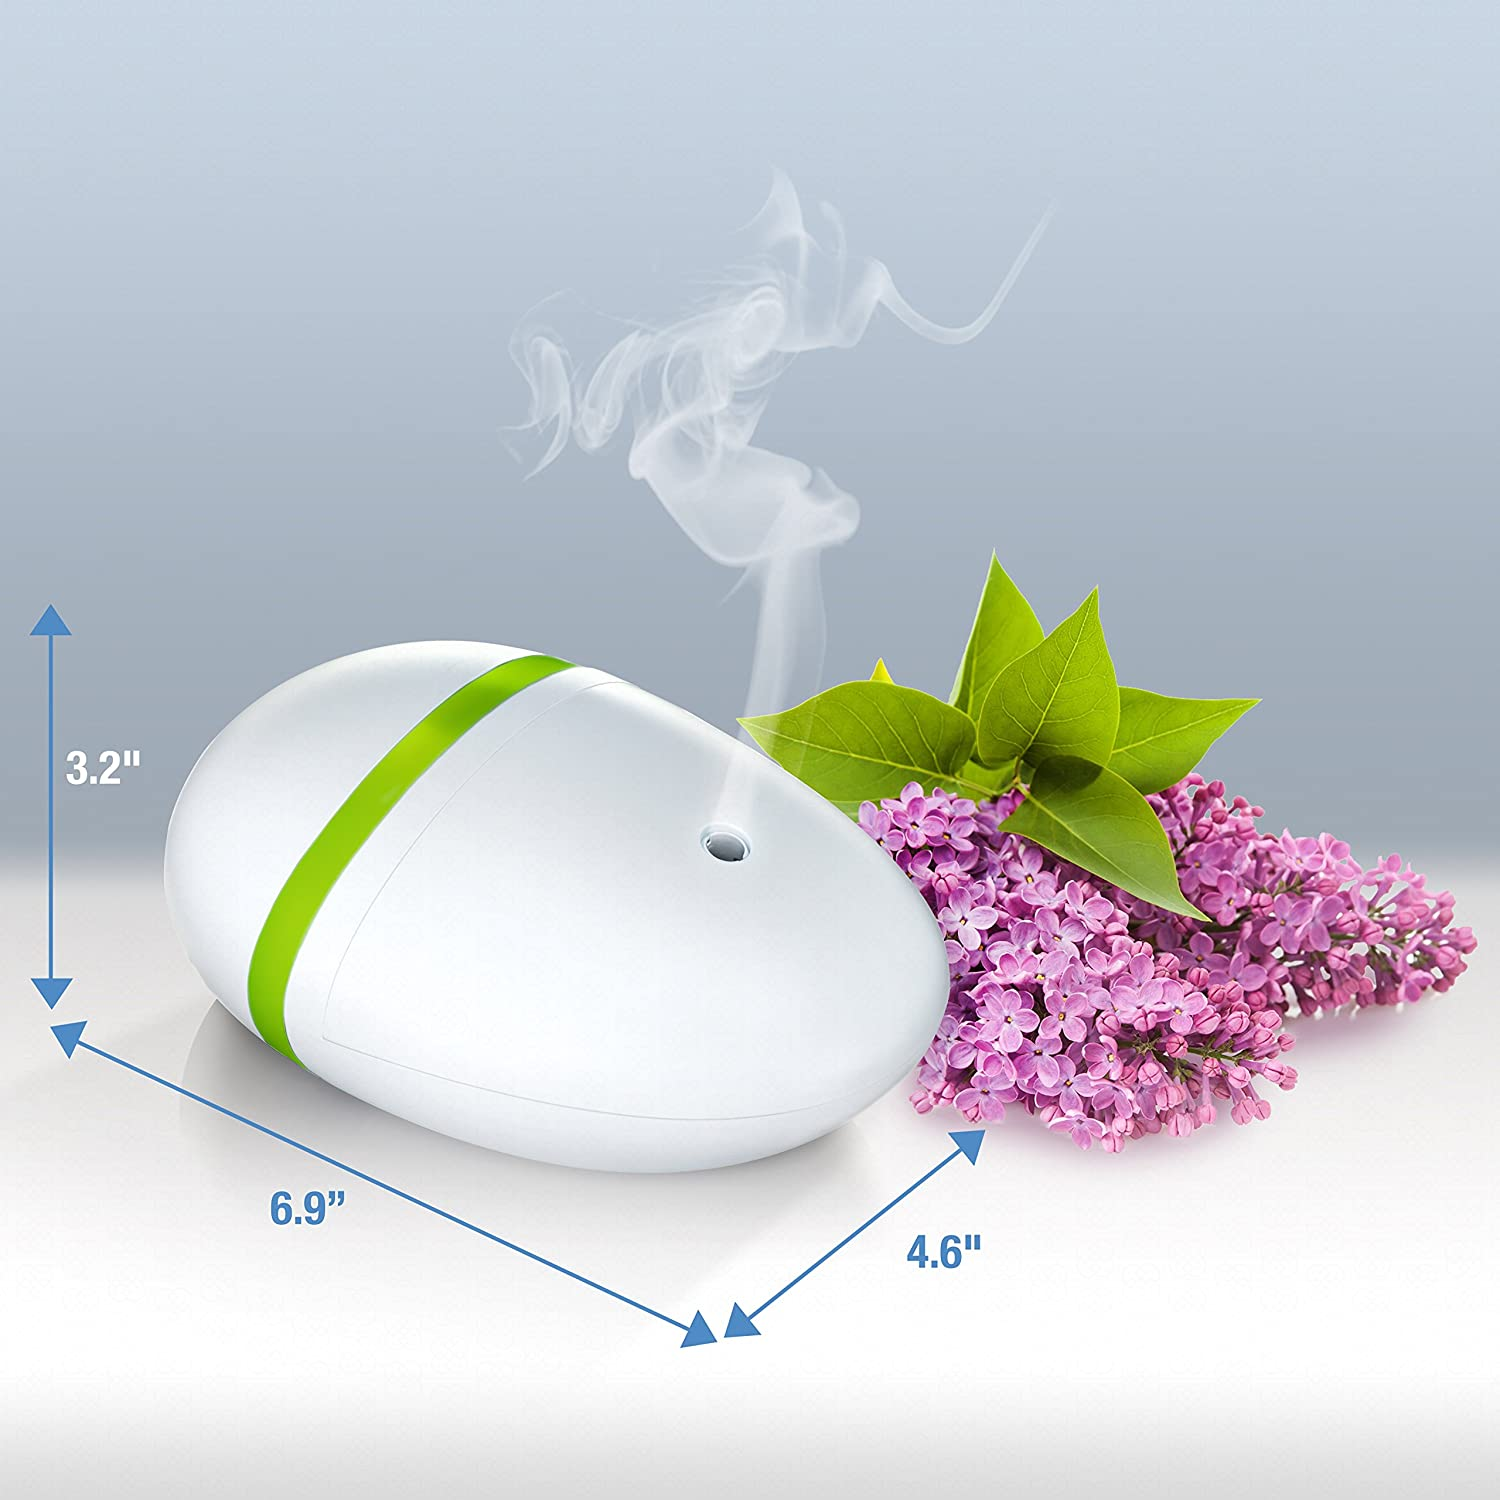 Essential Oil Diffuser Black Friday vs Cyber Monday 2015 – Best  #93BE0D